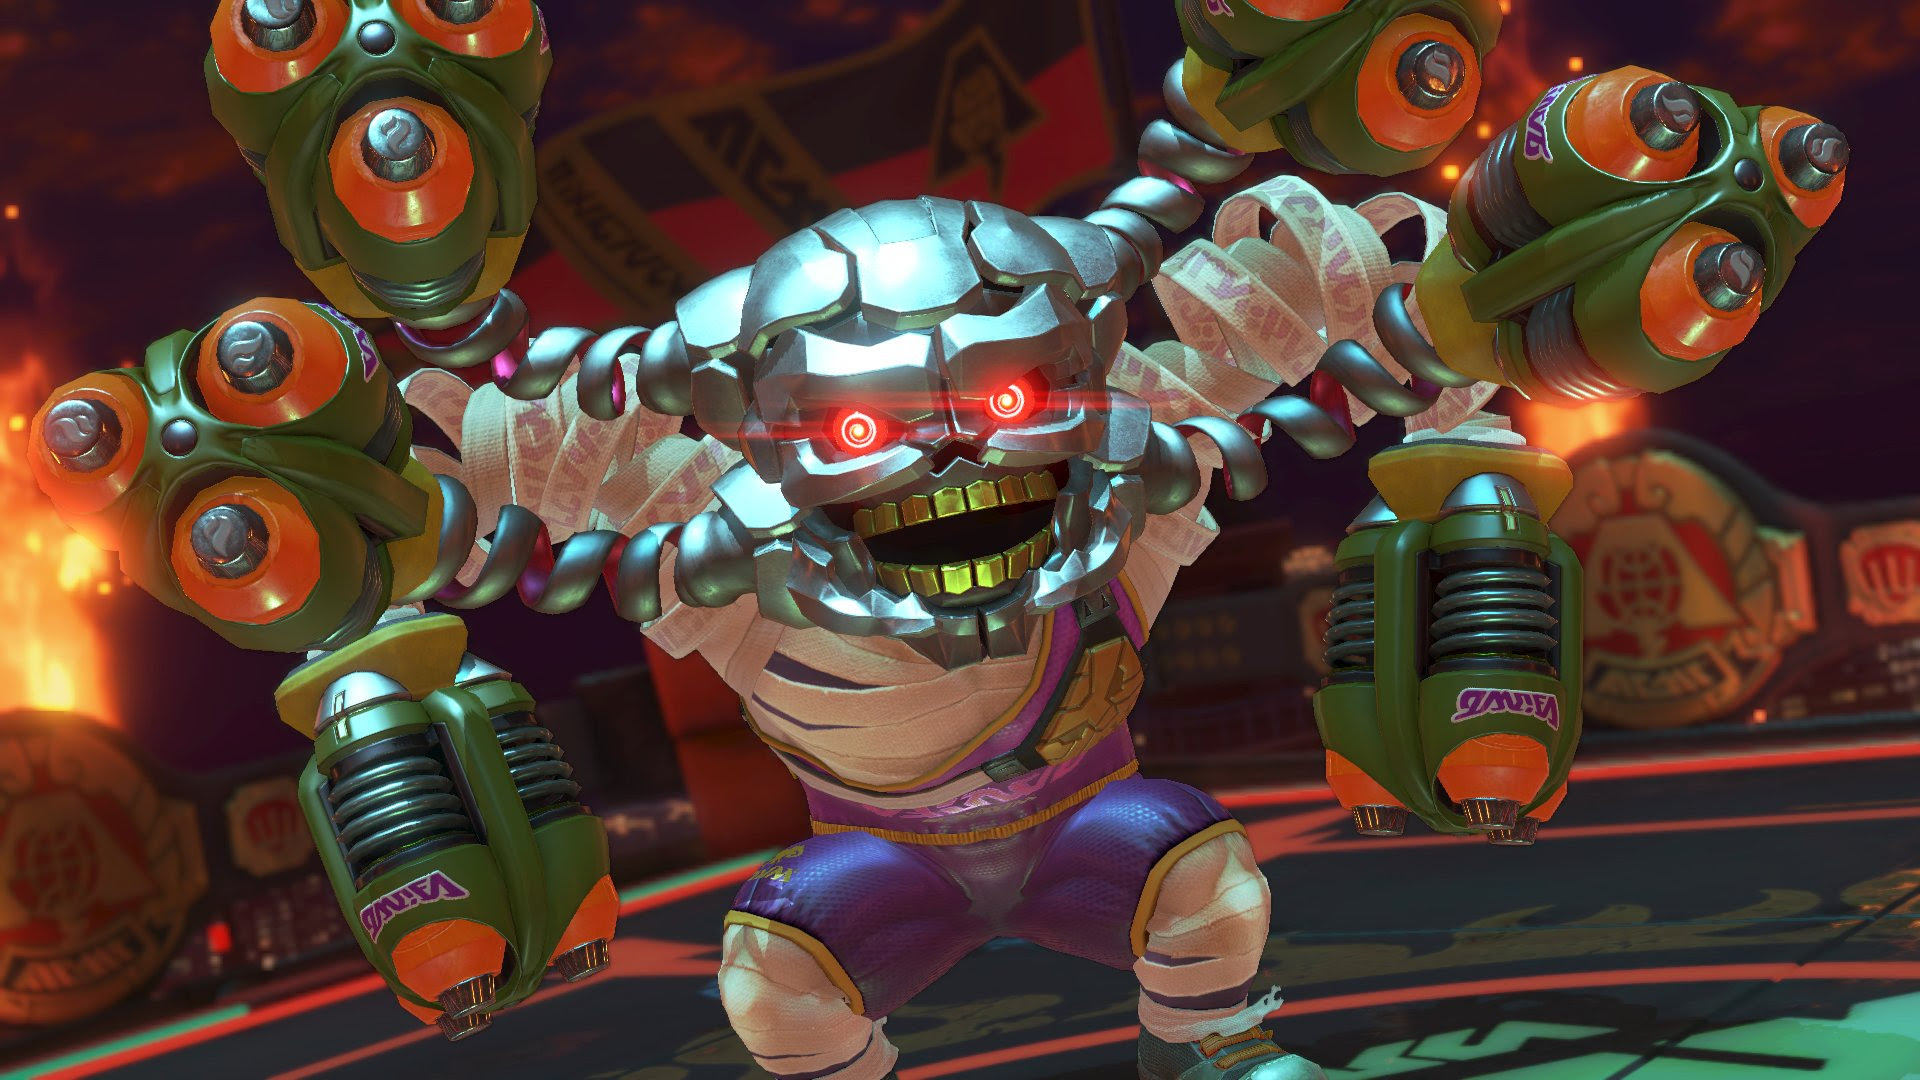 ARMS Twitter account teasing a radical new item screenshot